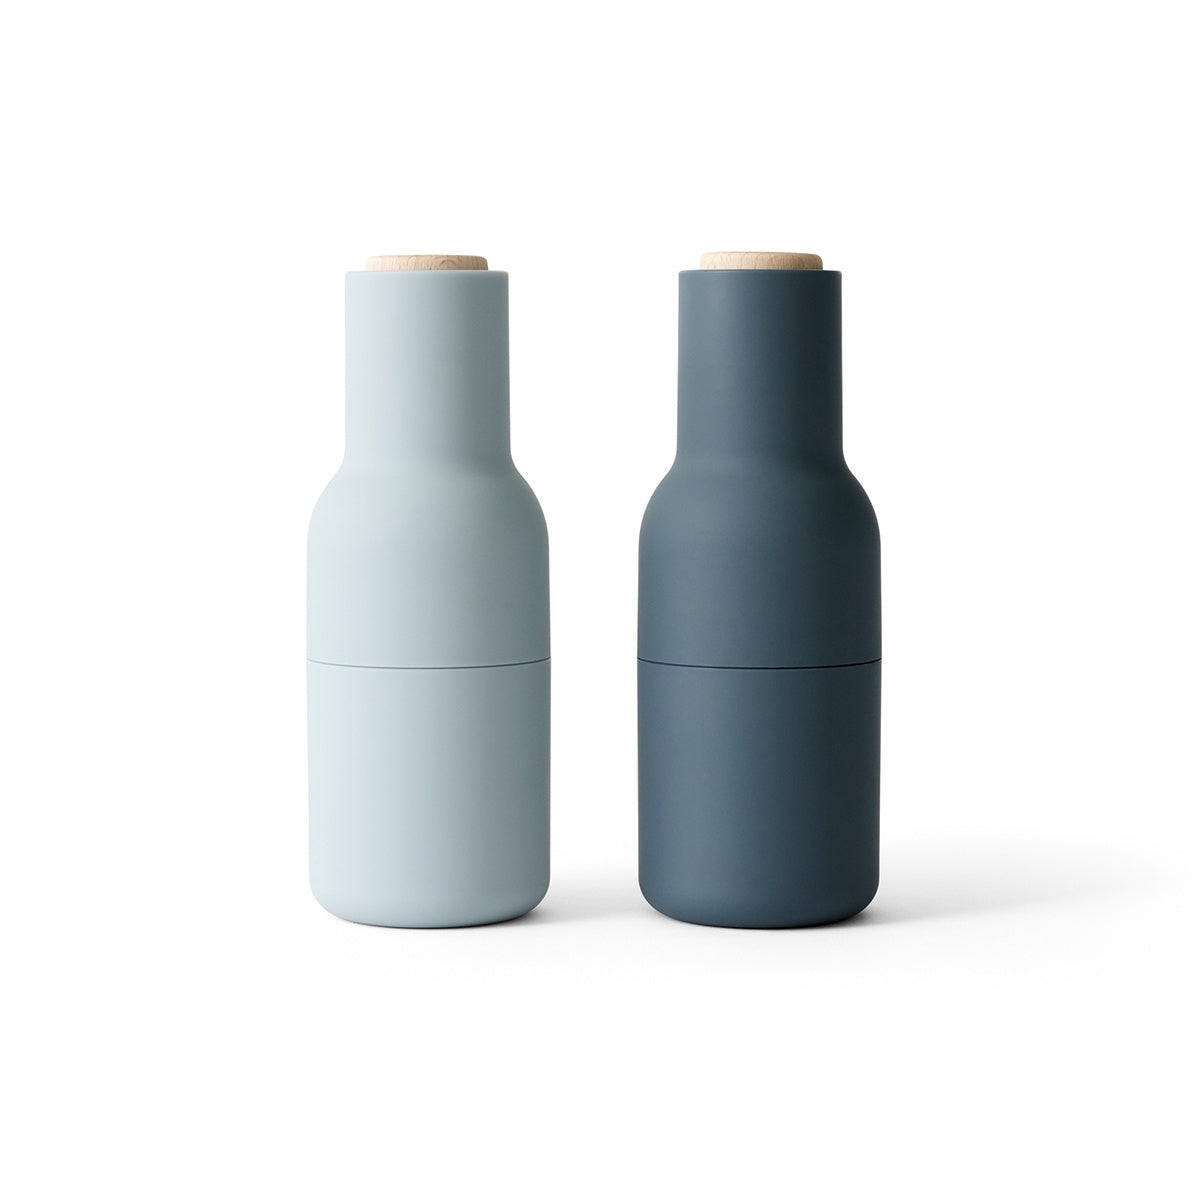 Menu Norm Bottle Grinder Set Blues, by Norman Architects